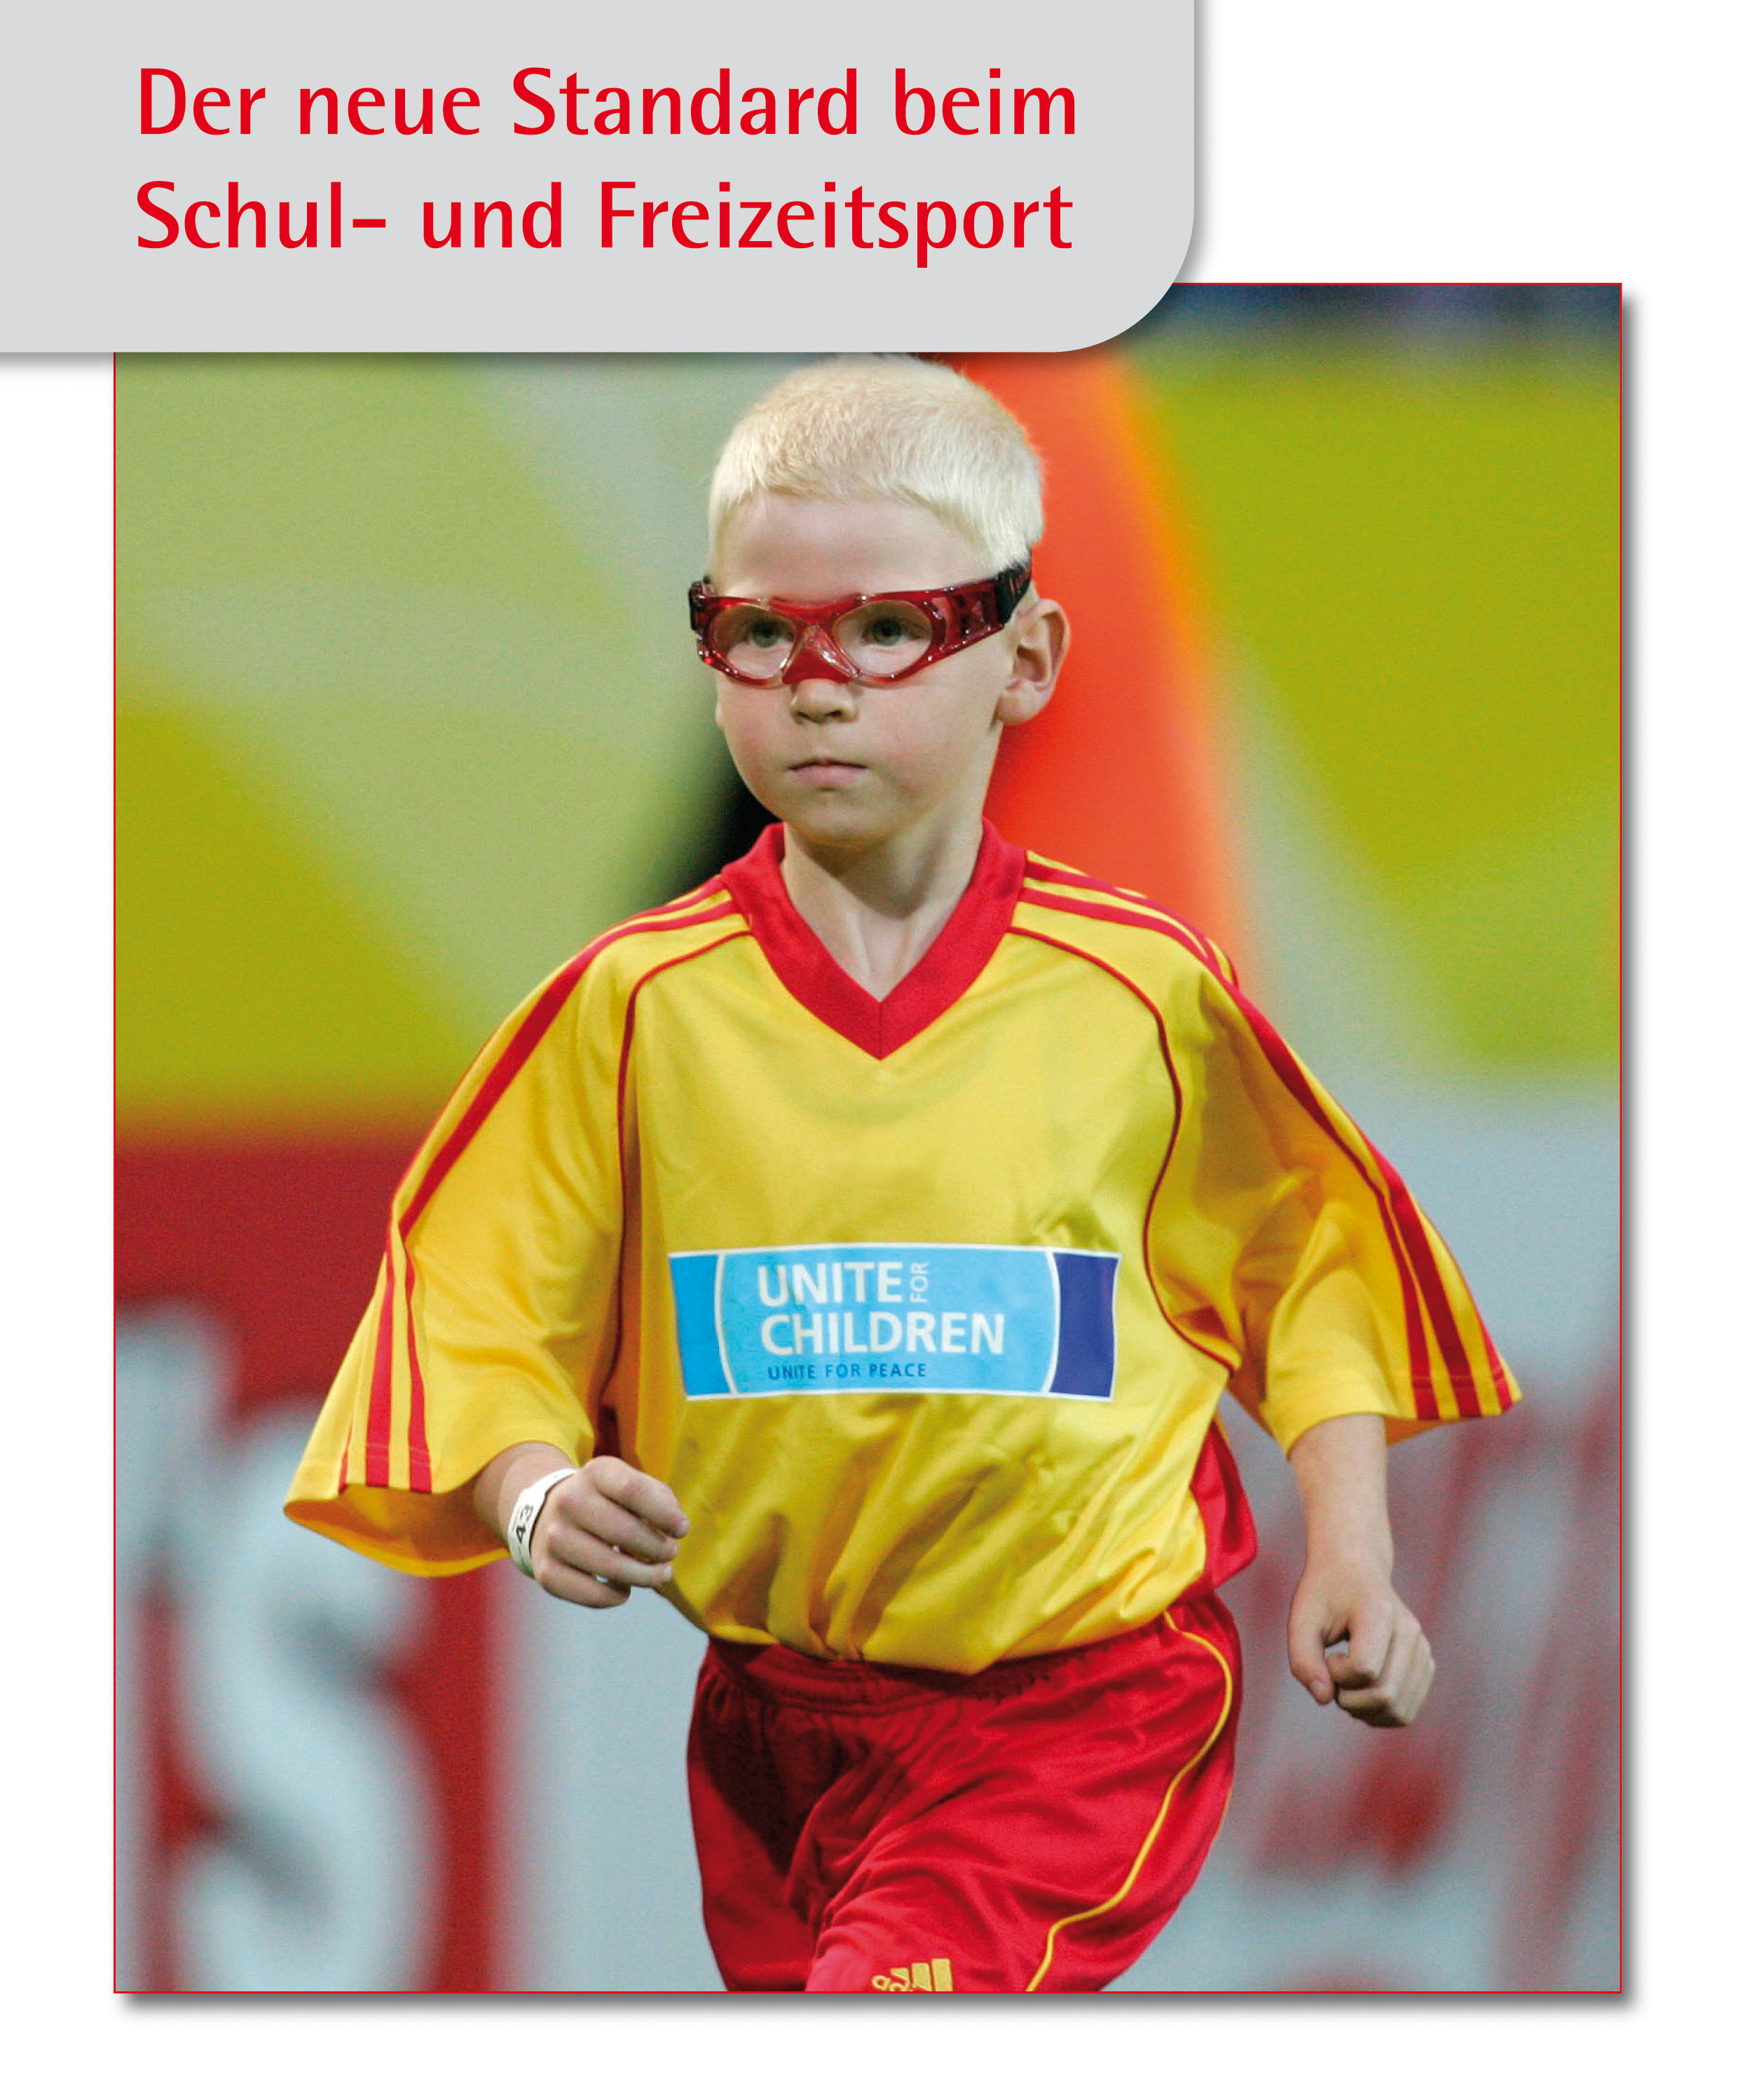 Bild Kindersport